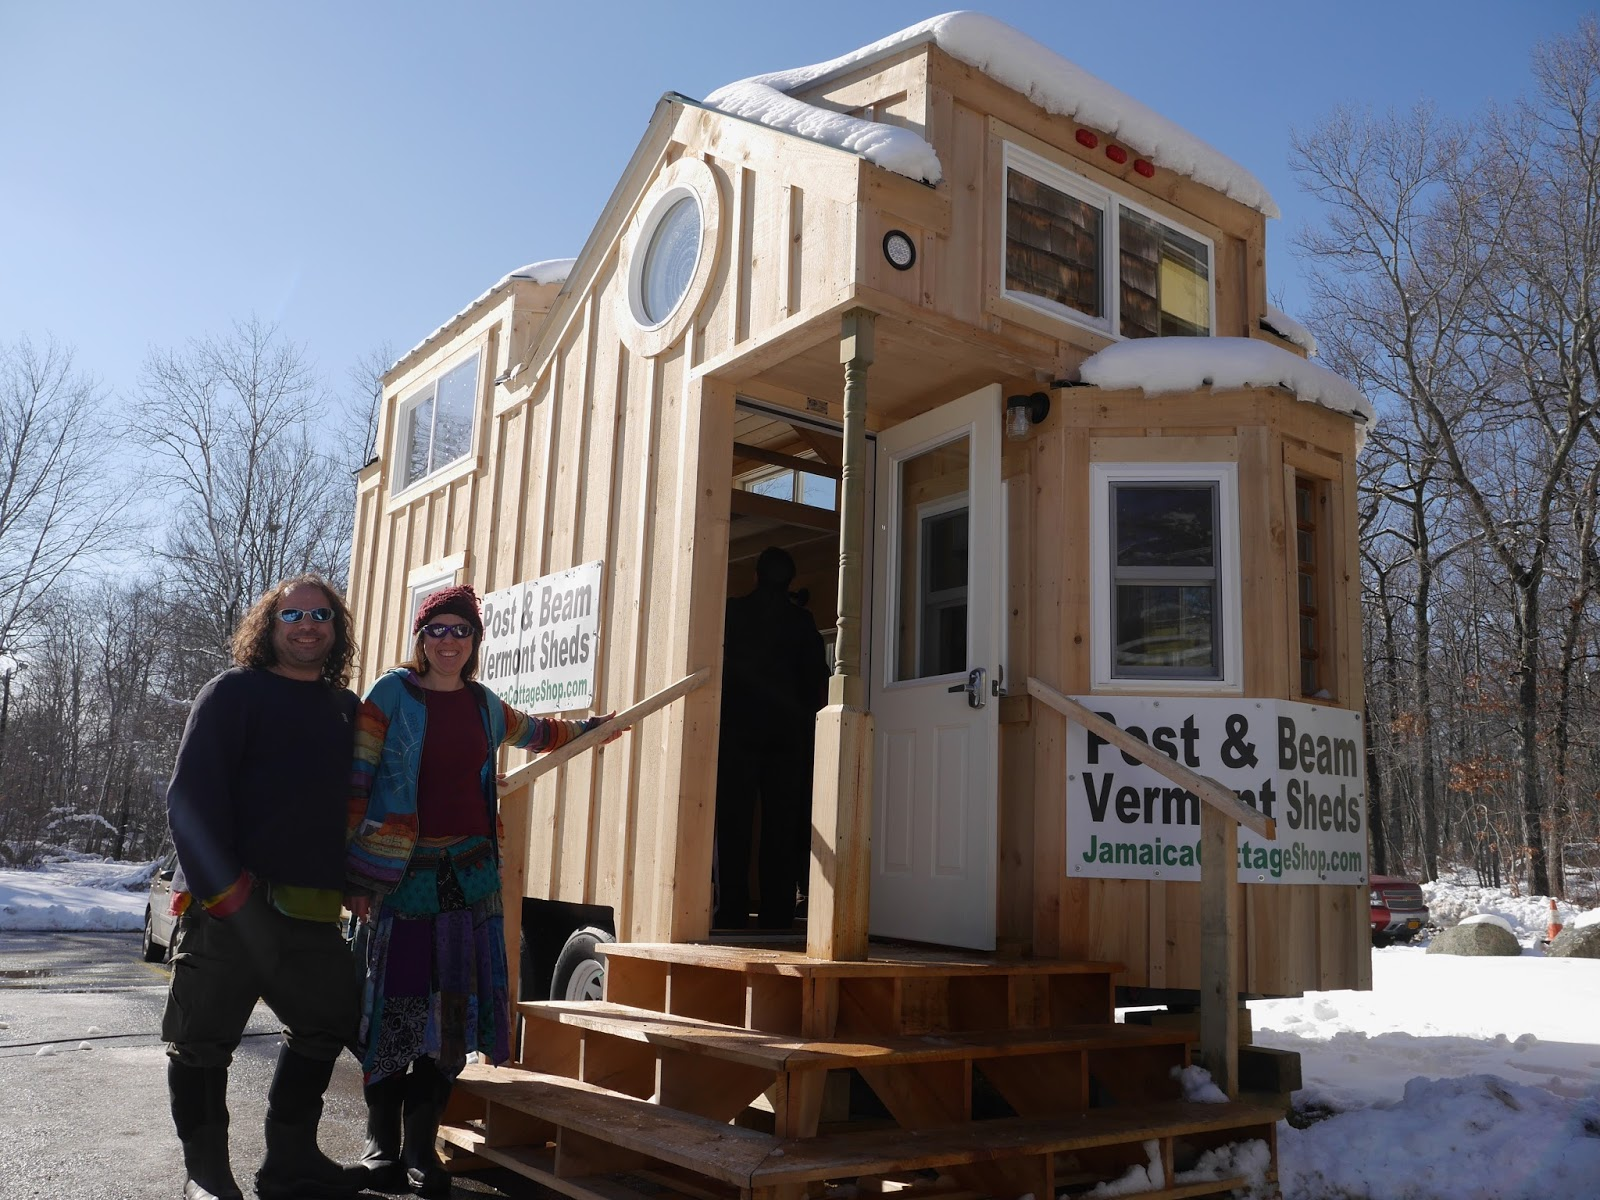 Relaxshackscom The Charlavail Rustic Solar Tiny House in Vermont